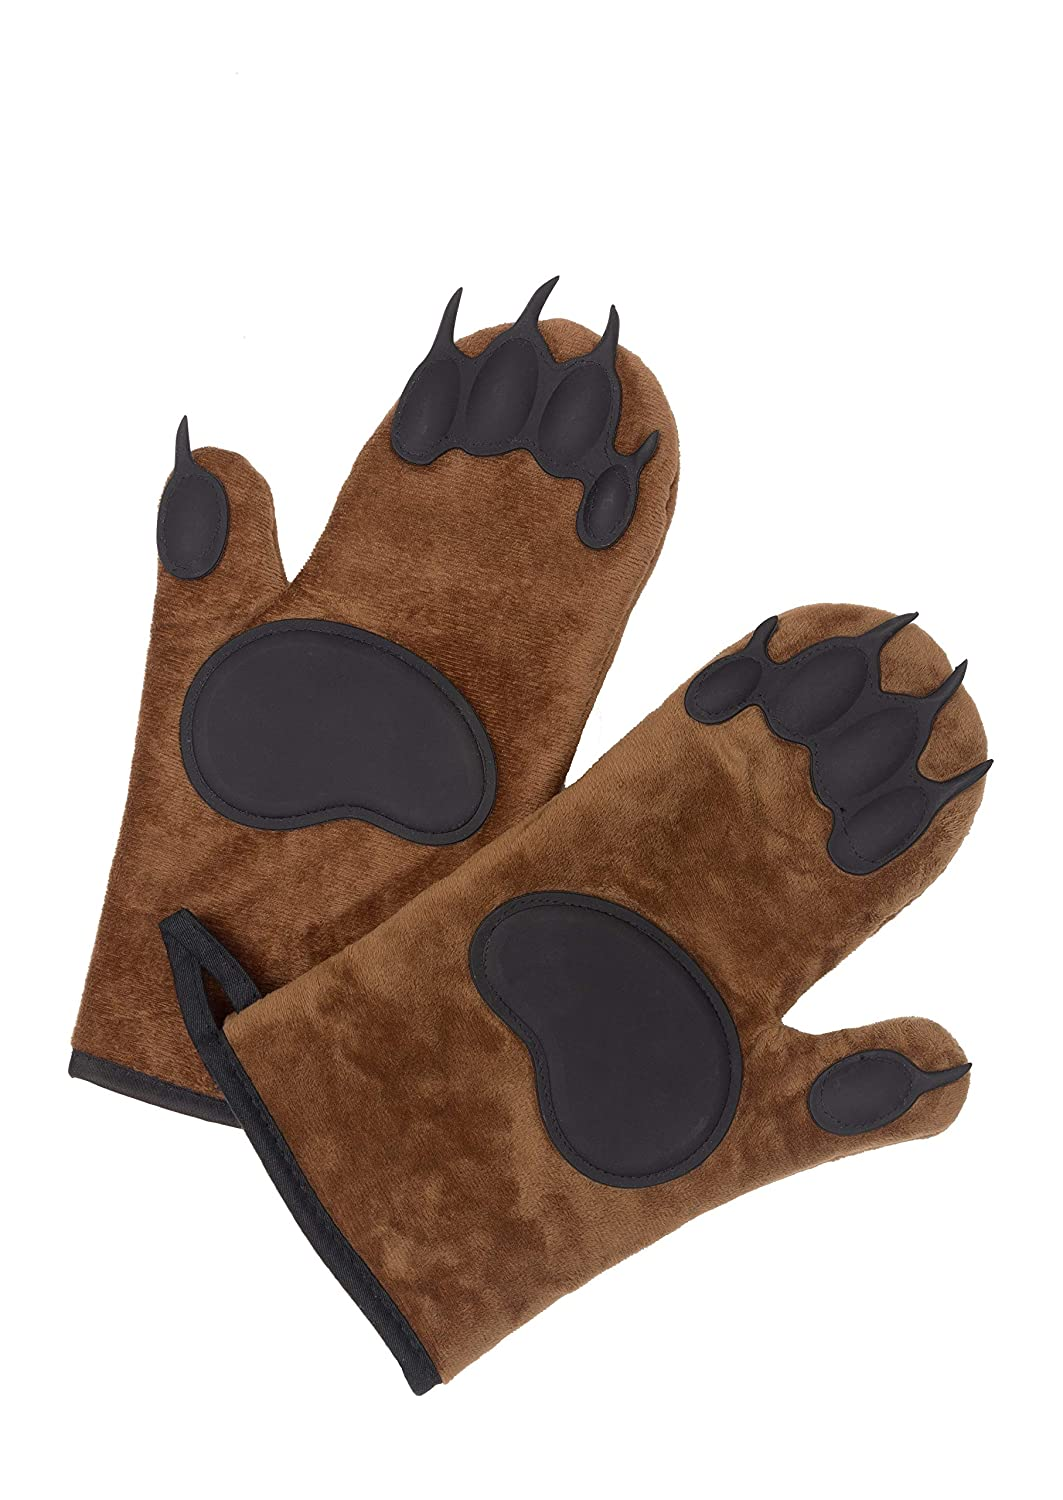 William's Cooking Bear Paw Oven Mitts - Set of 2 with Pot Holders Included - Super Soft - Heat Resistant - Non Slip - Fun - Great Gift for Friends or Family - Complete Set